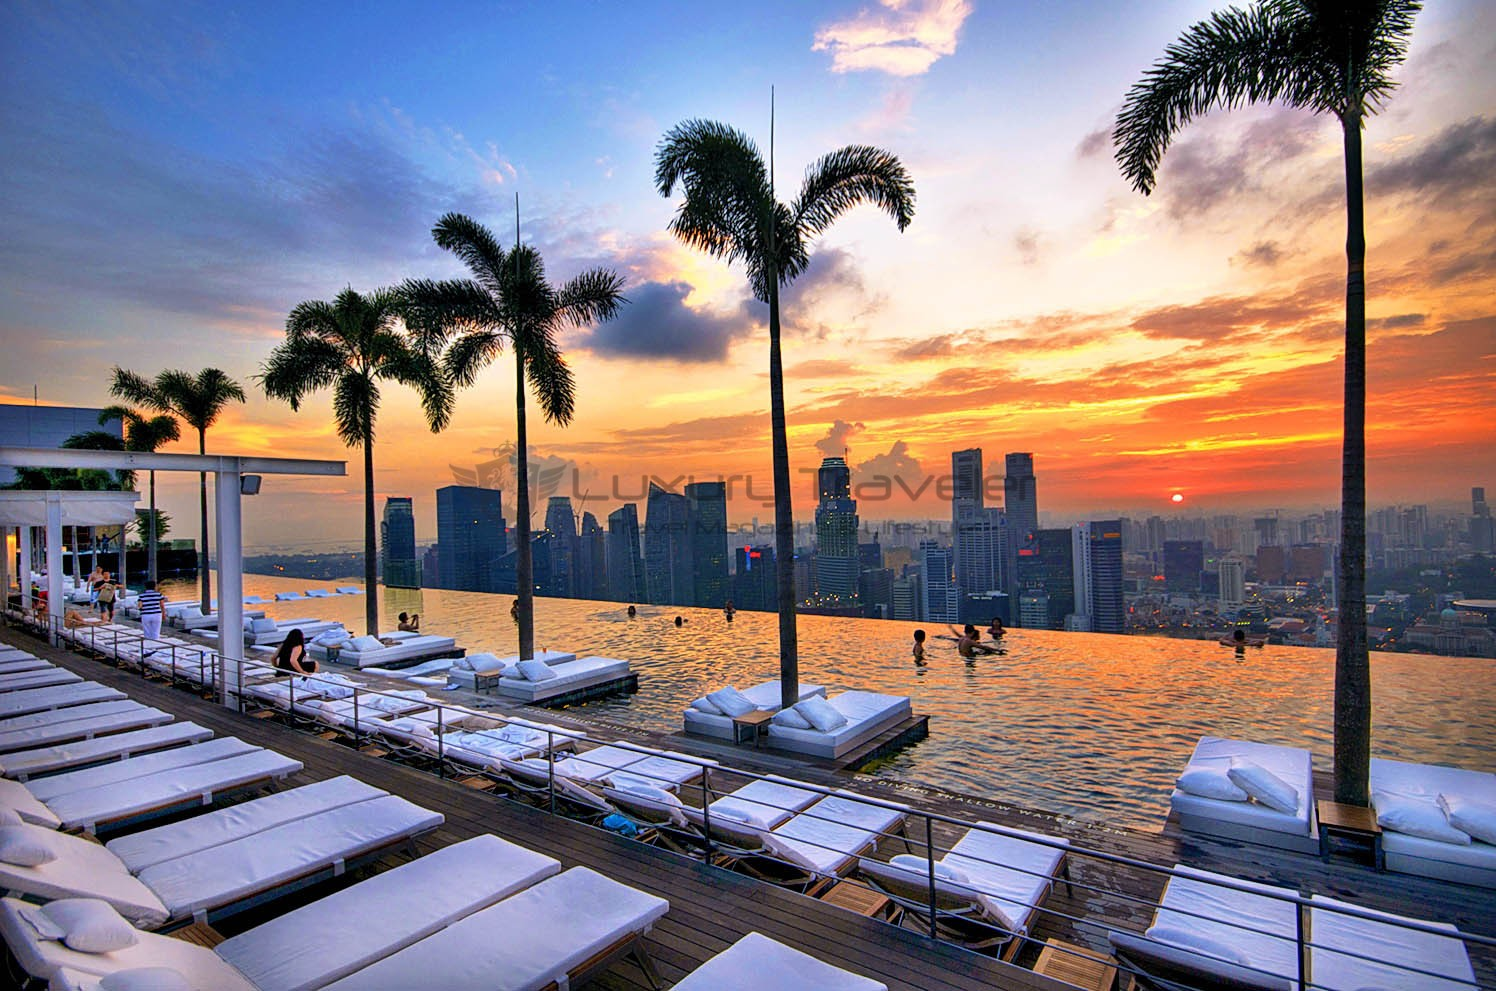 Marina bay sands singapore outstanding luxury hotel luxury traveler - Singapore hotel piscina ...